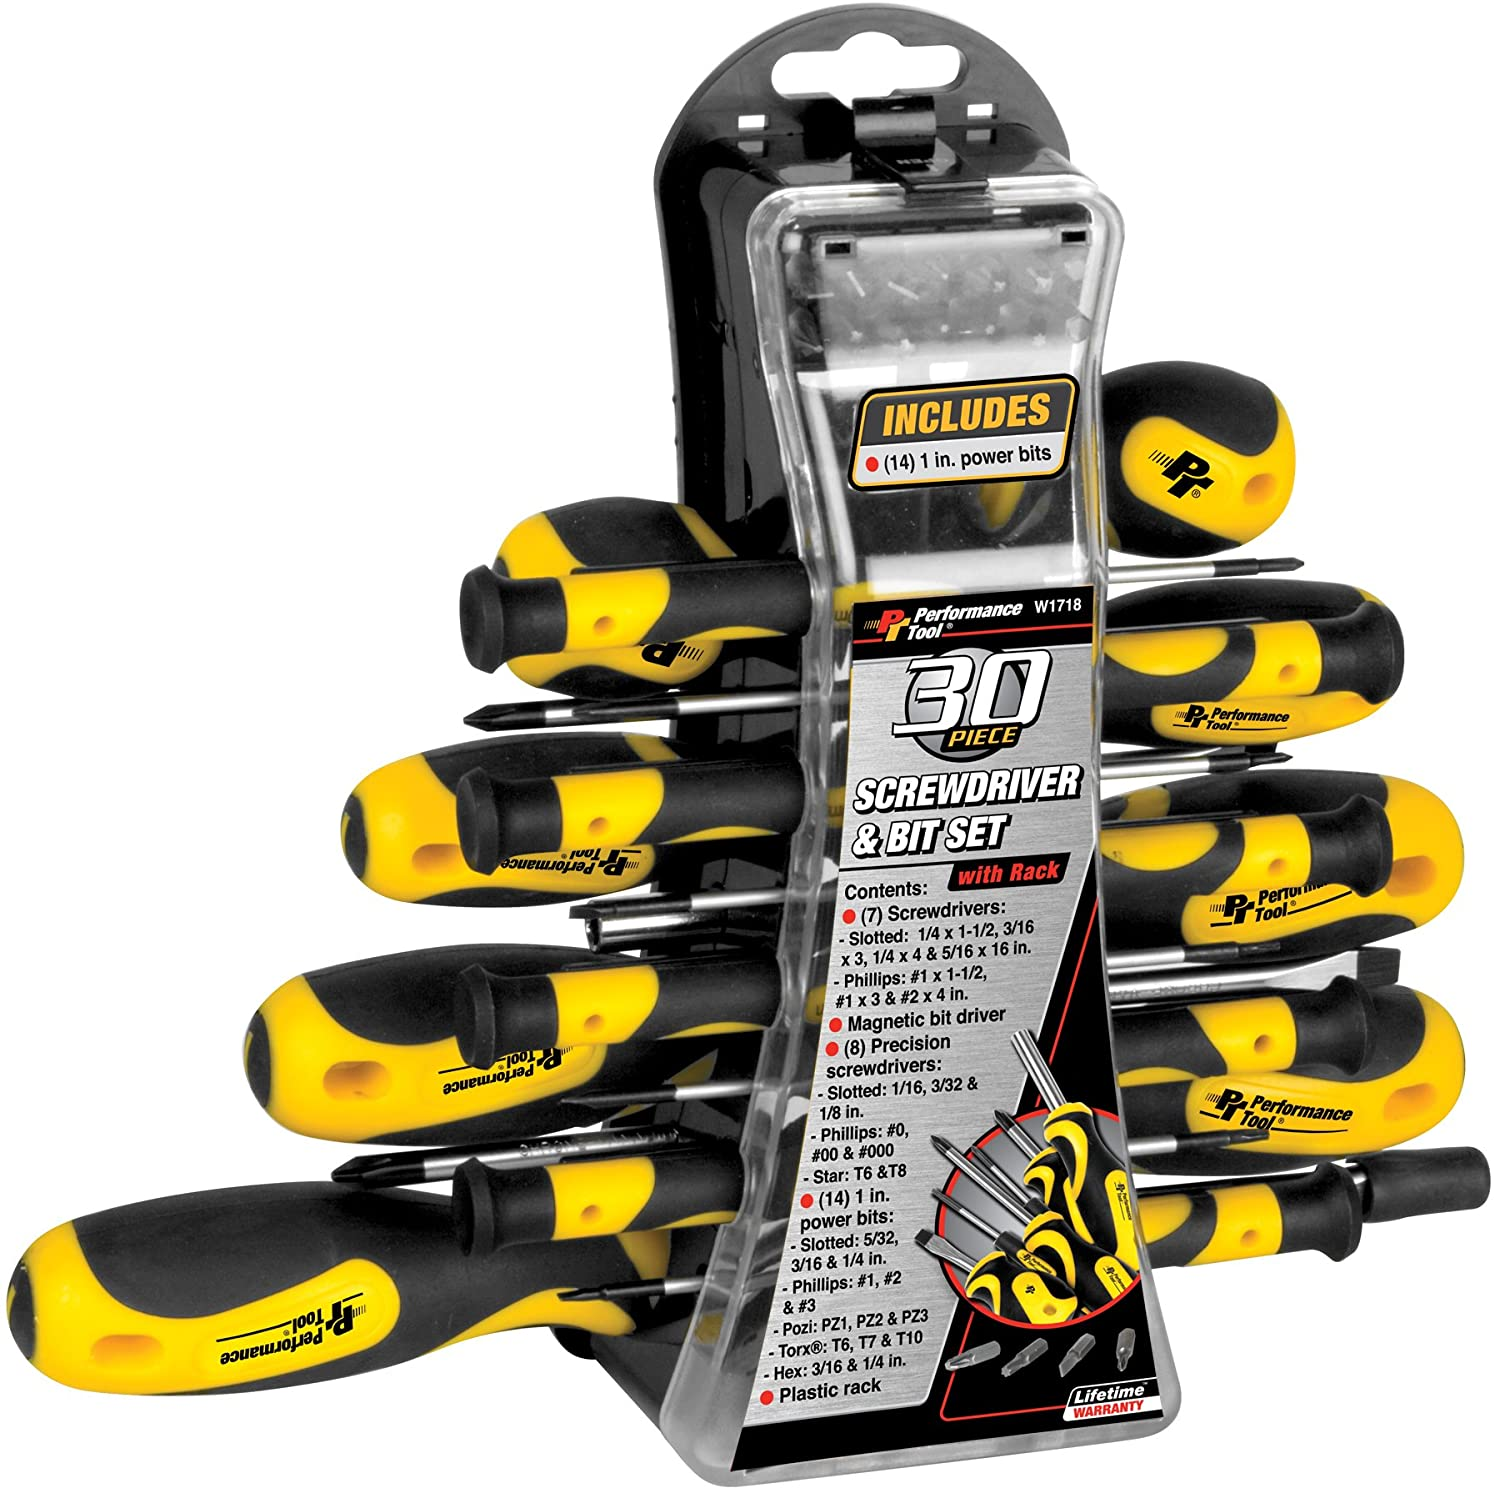 61-Piece Yellow//Black Performance Tool W1731 Screwdriver and Bit Set with Rack